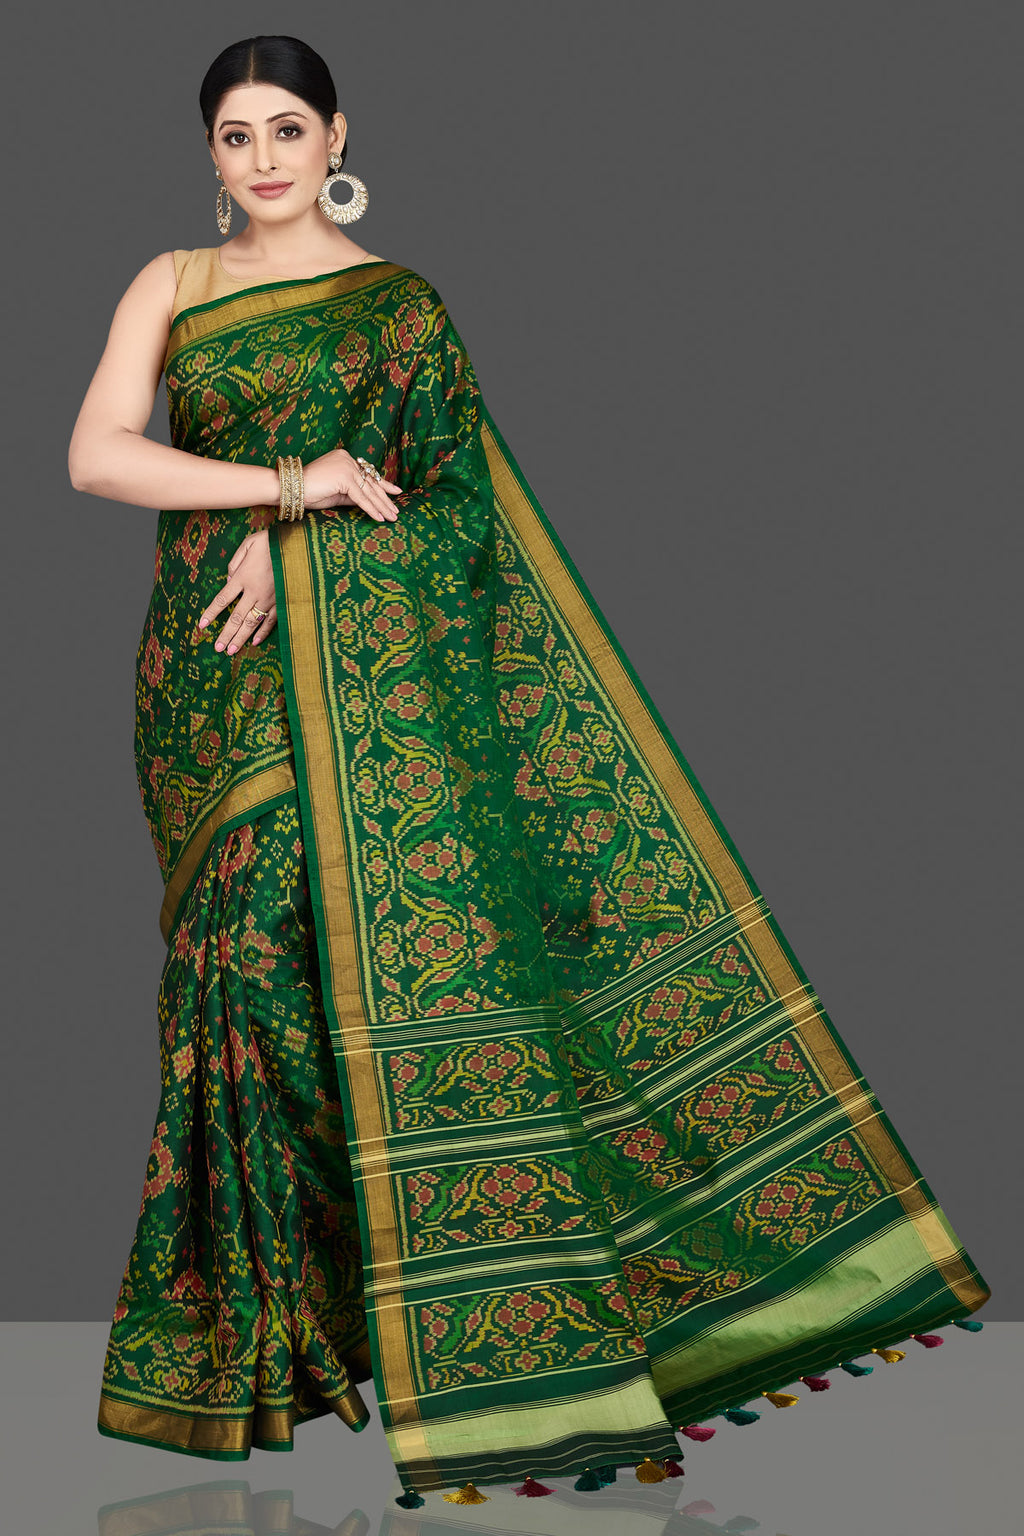 Shop stunning green patola ikkat sari online in USA with golden border. Be the center of attraction at weddings and special occasions in exquisite designer sarees, handwoven silk sarees, embroidered saris, pure silk sarees from Pure Elegance Indian fashion store in USA.-full view